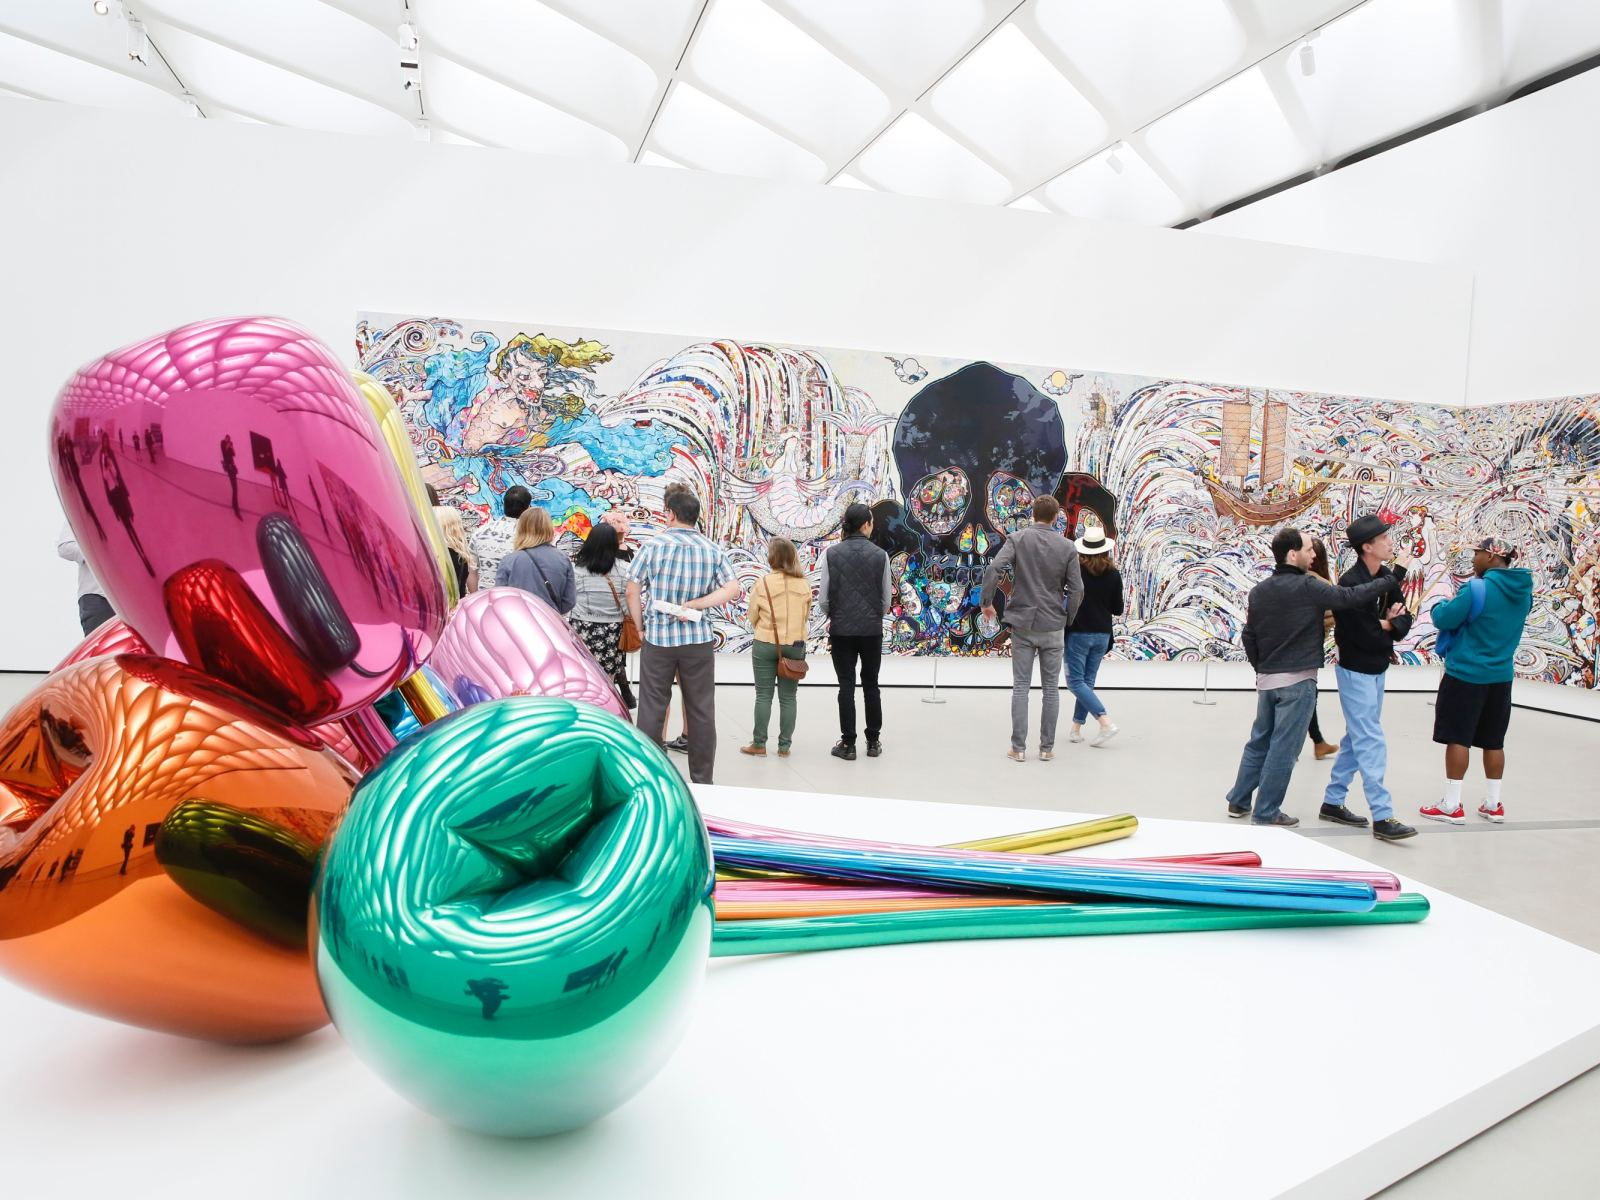 Third-floor galleries at The Broad